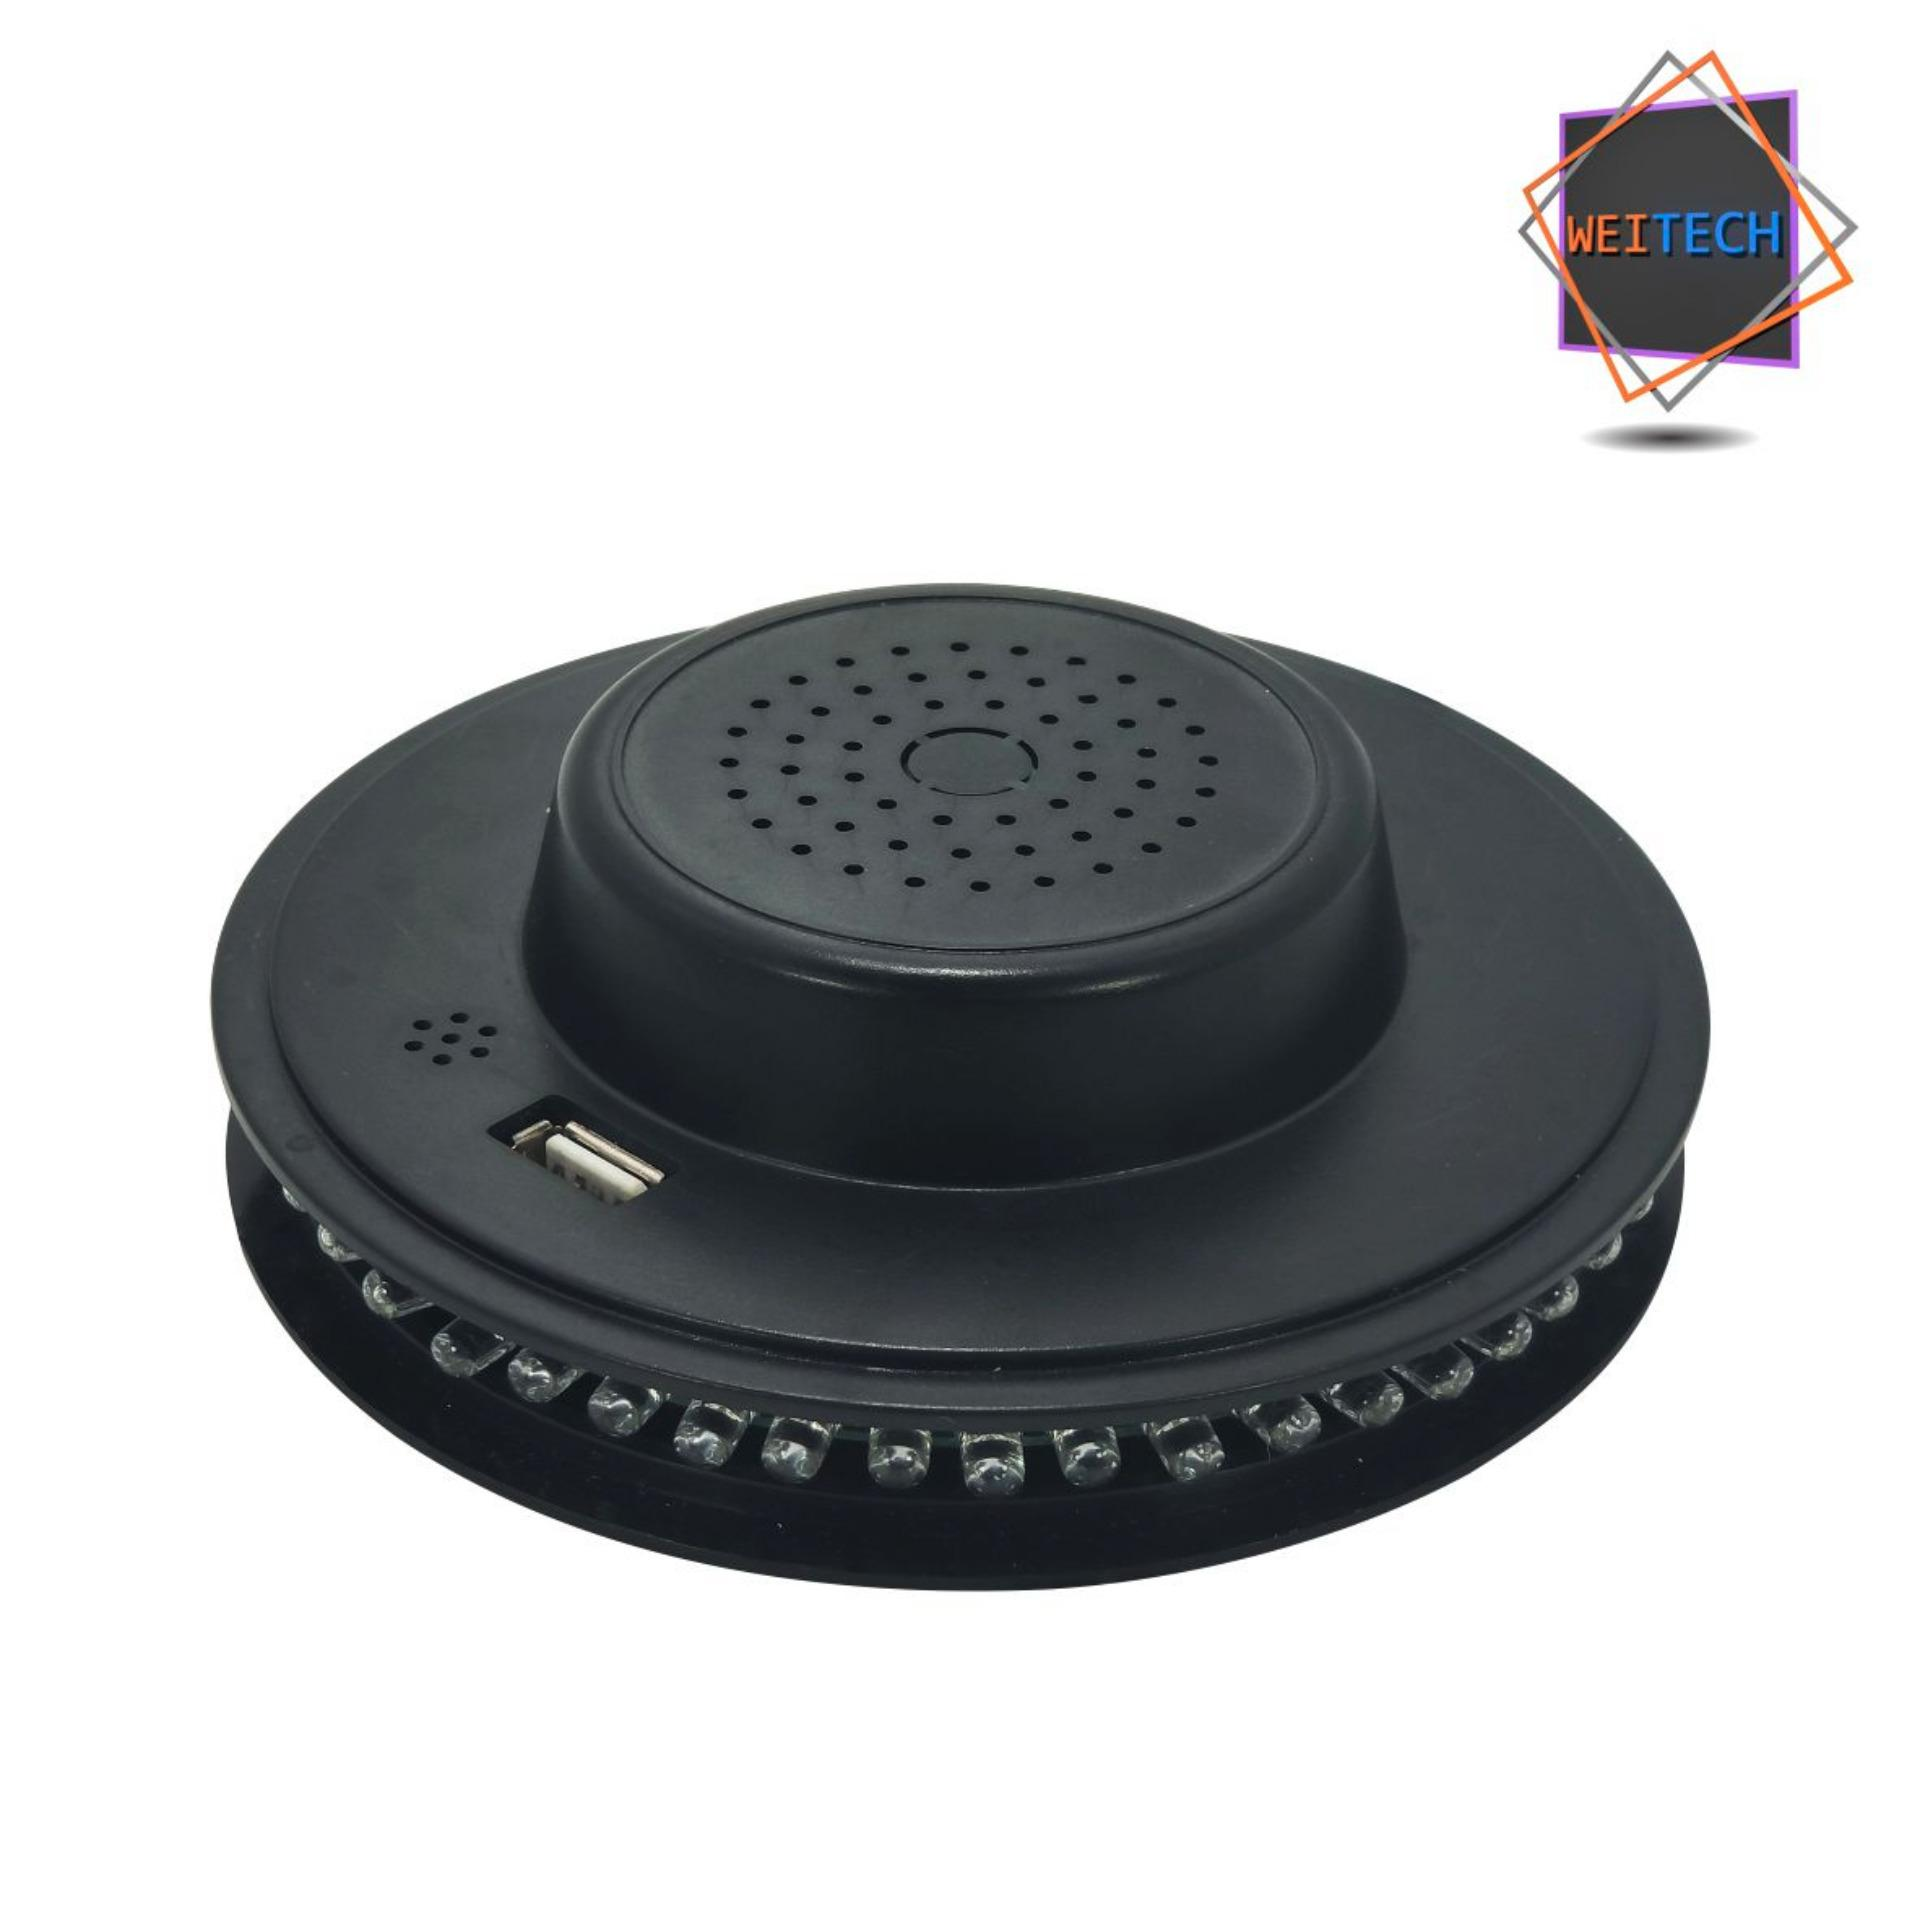 Jual Weitech Lampu Disco Ufo Music Mp3 Murah